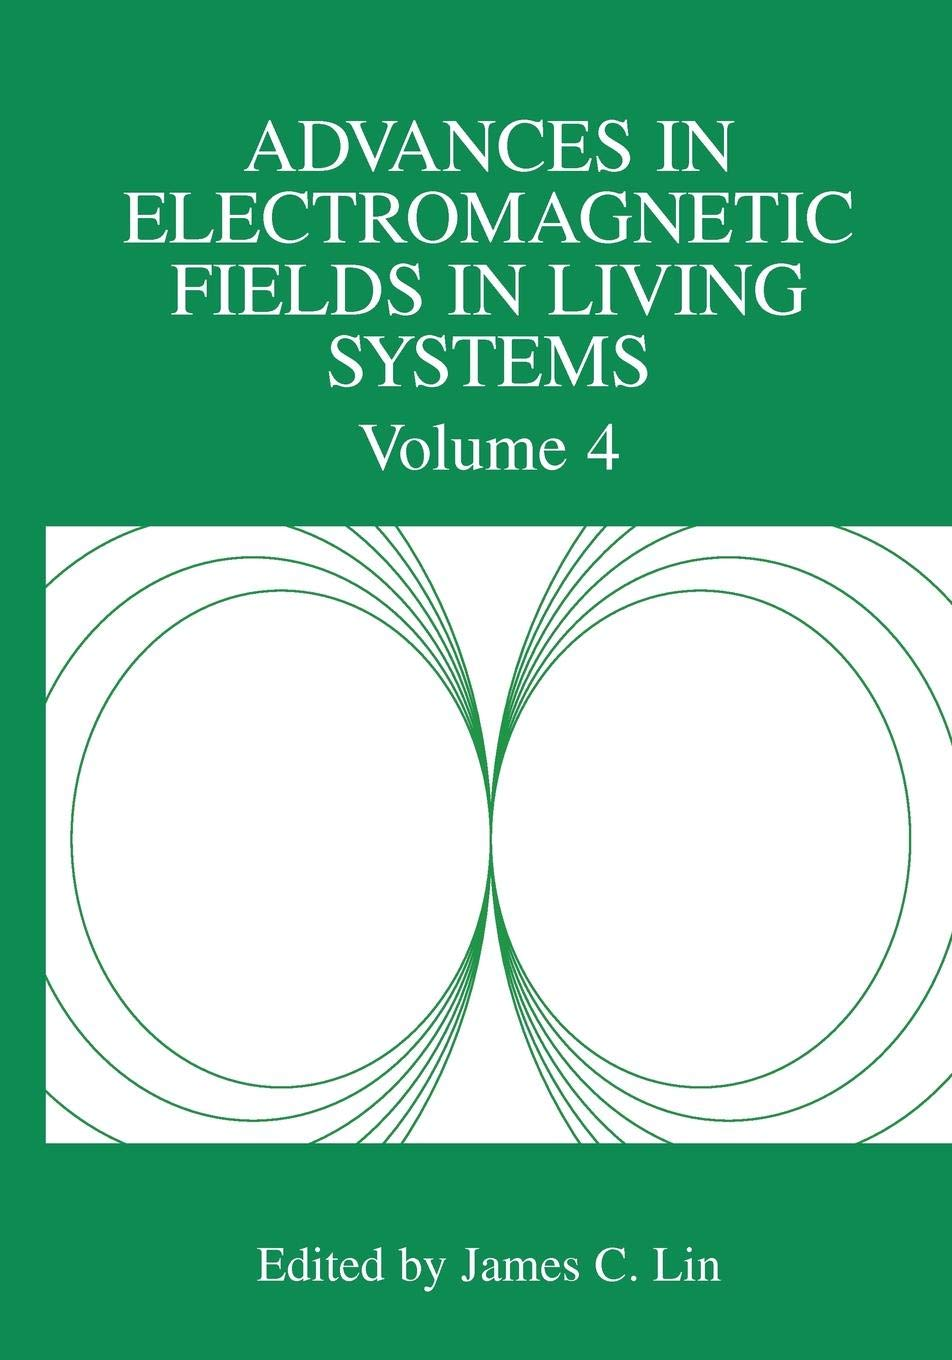 Advances in Electromagnetic Fields in Living Systems: Volume 4:  Amazon.co.uk: James C. Lin: 9781441936783: Books